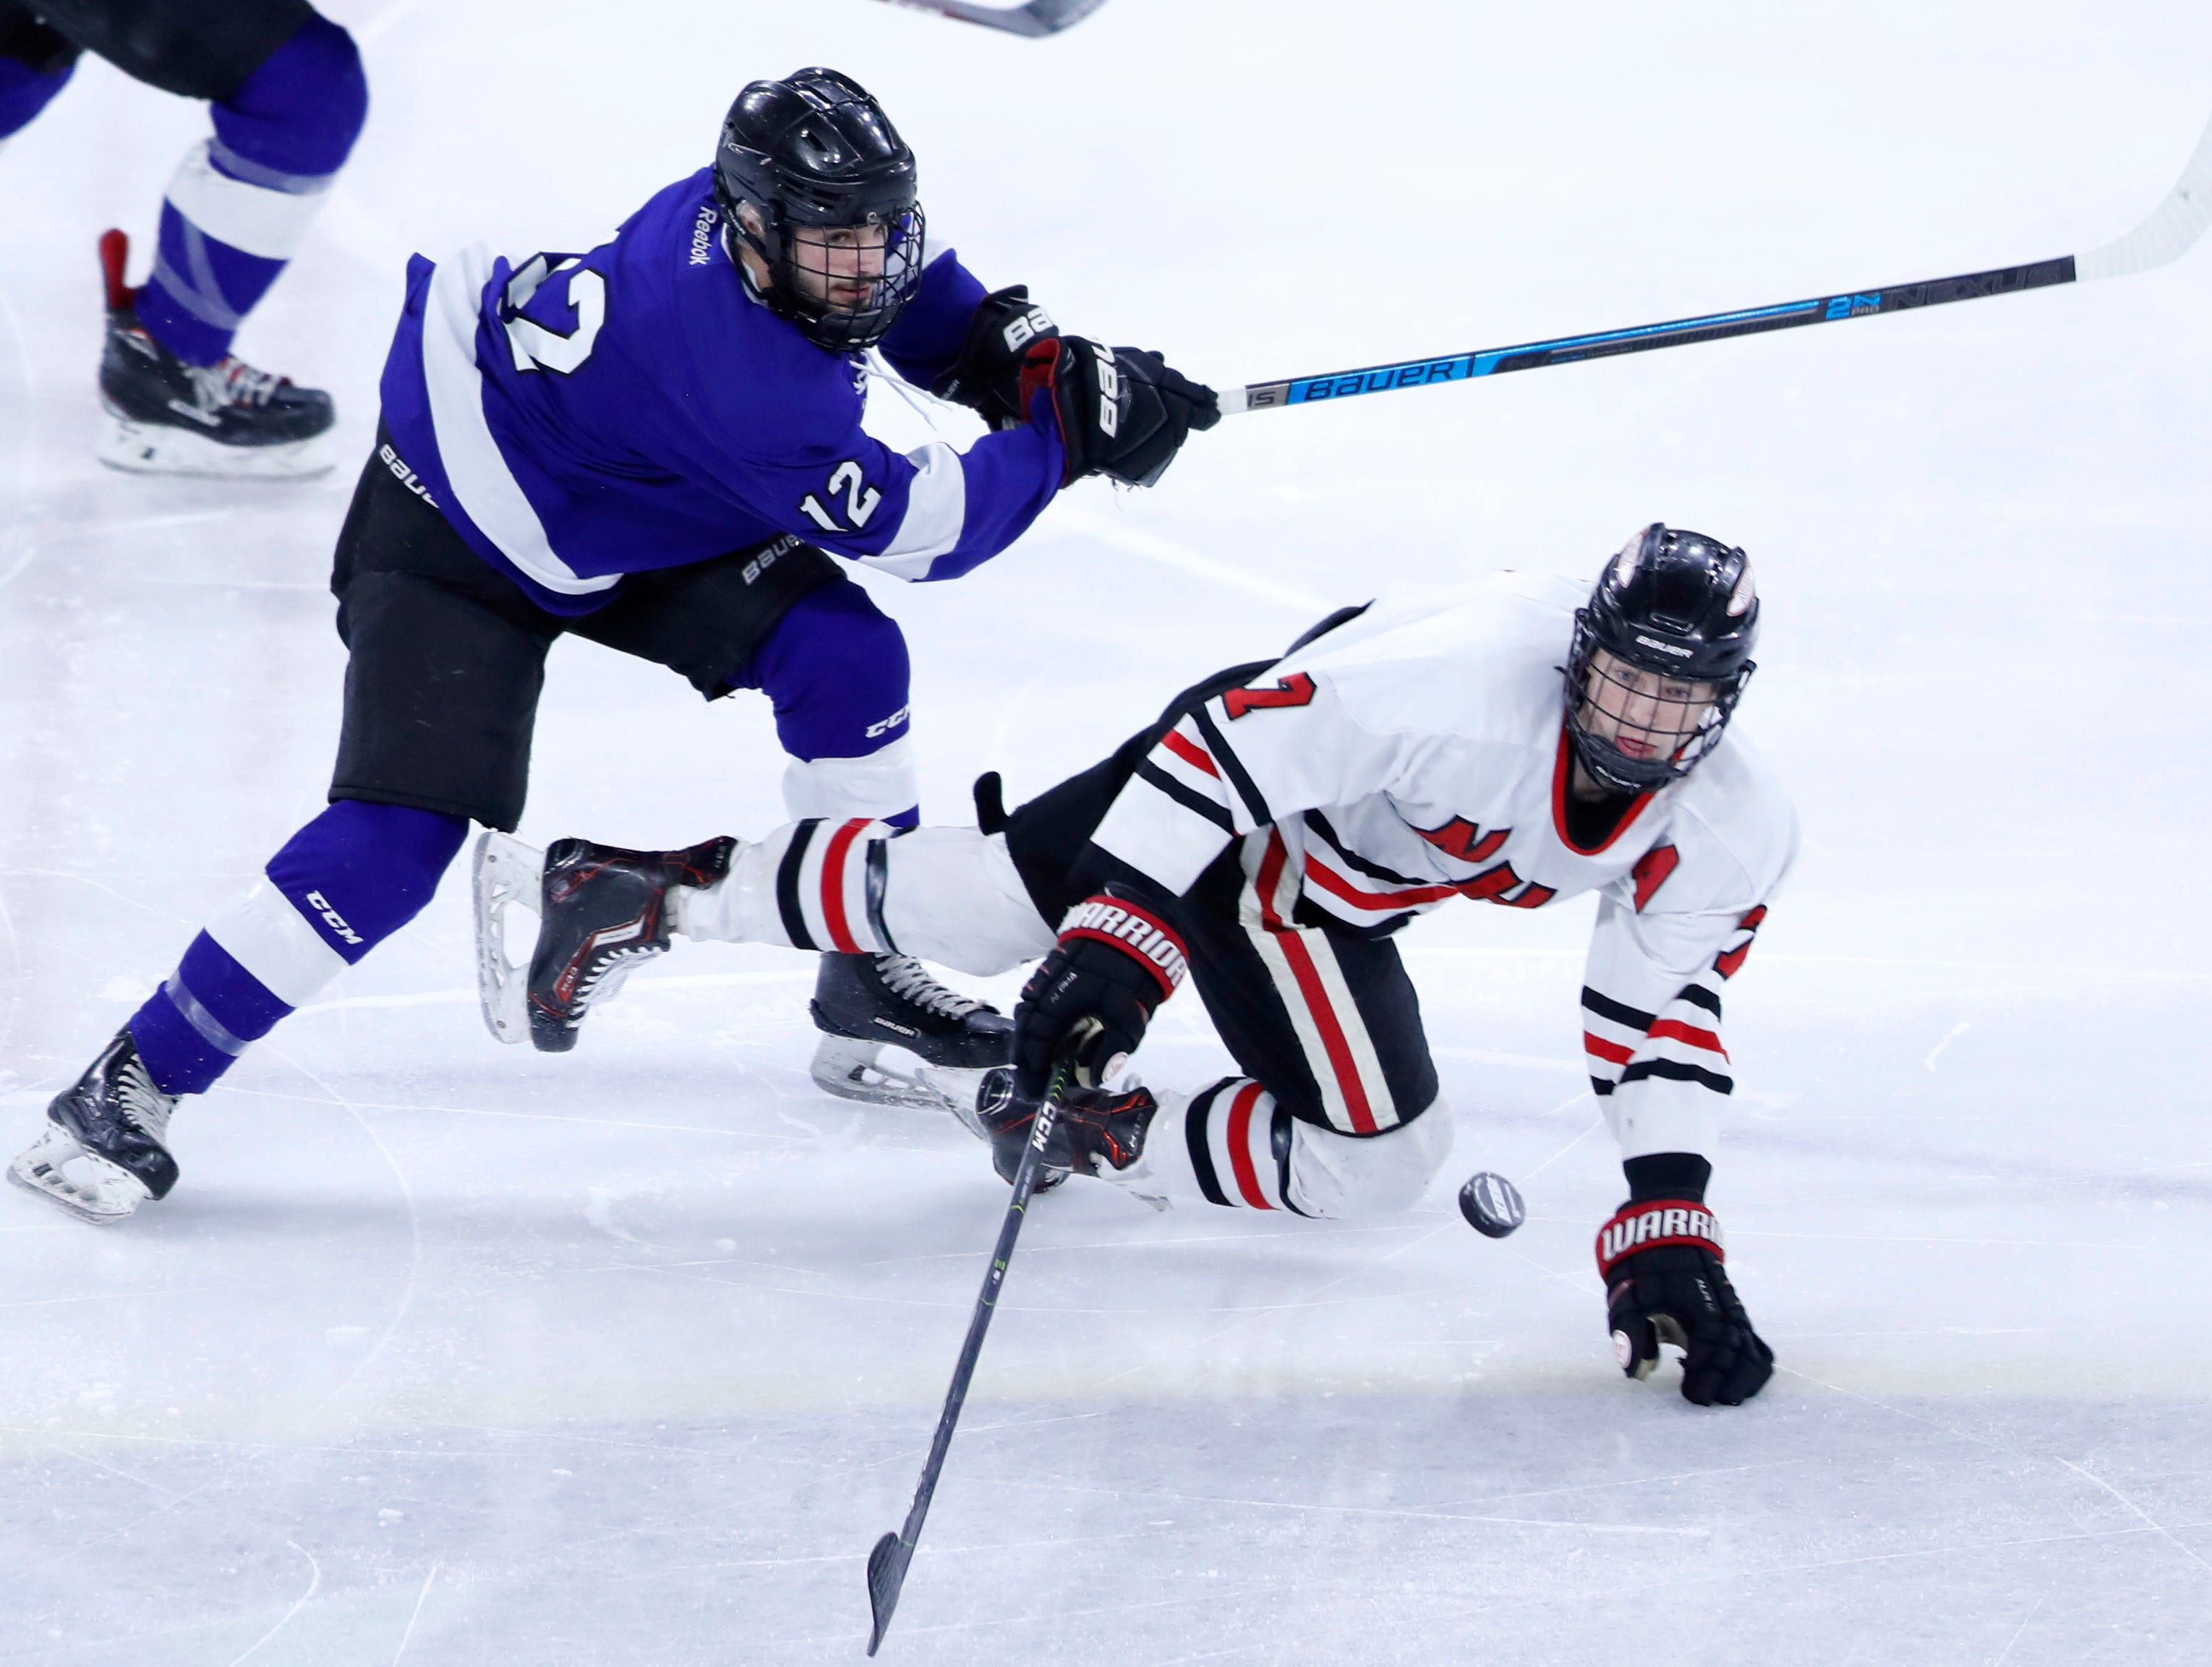 Waukesha North Co-opÕs Trenton Tucker trips up Neenah/Hortonville/MenashaÕs Ethan Long during the WIAA State Hockey Tournament semifinals Friday, March 1, 2019, at Veterans Memorial Coliseum in Madison, Wis.